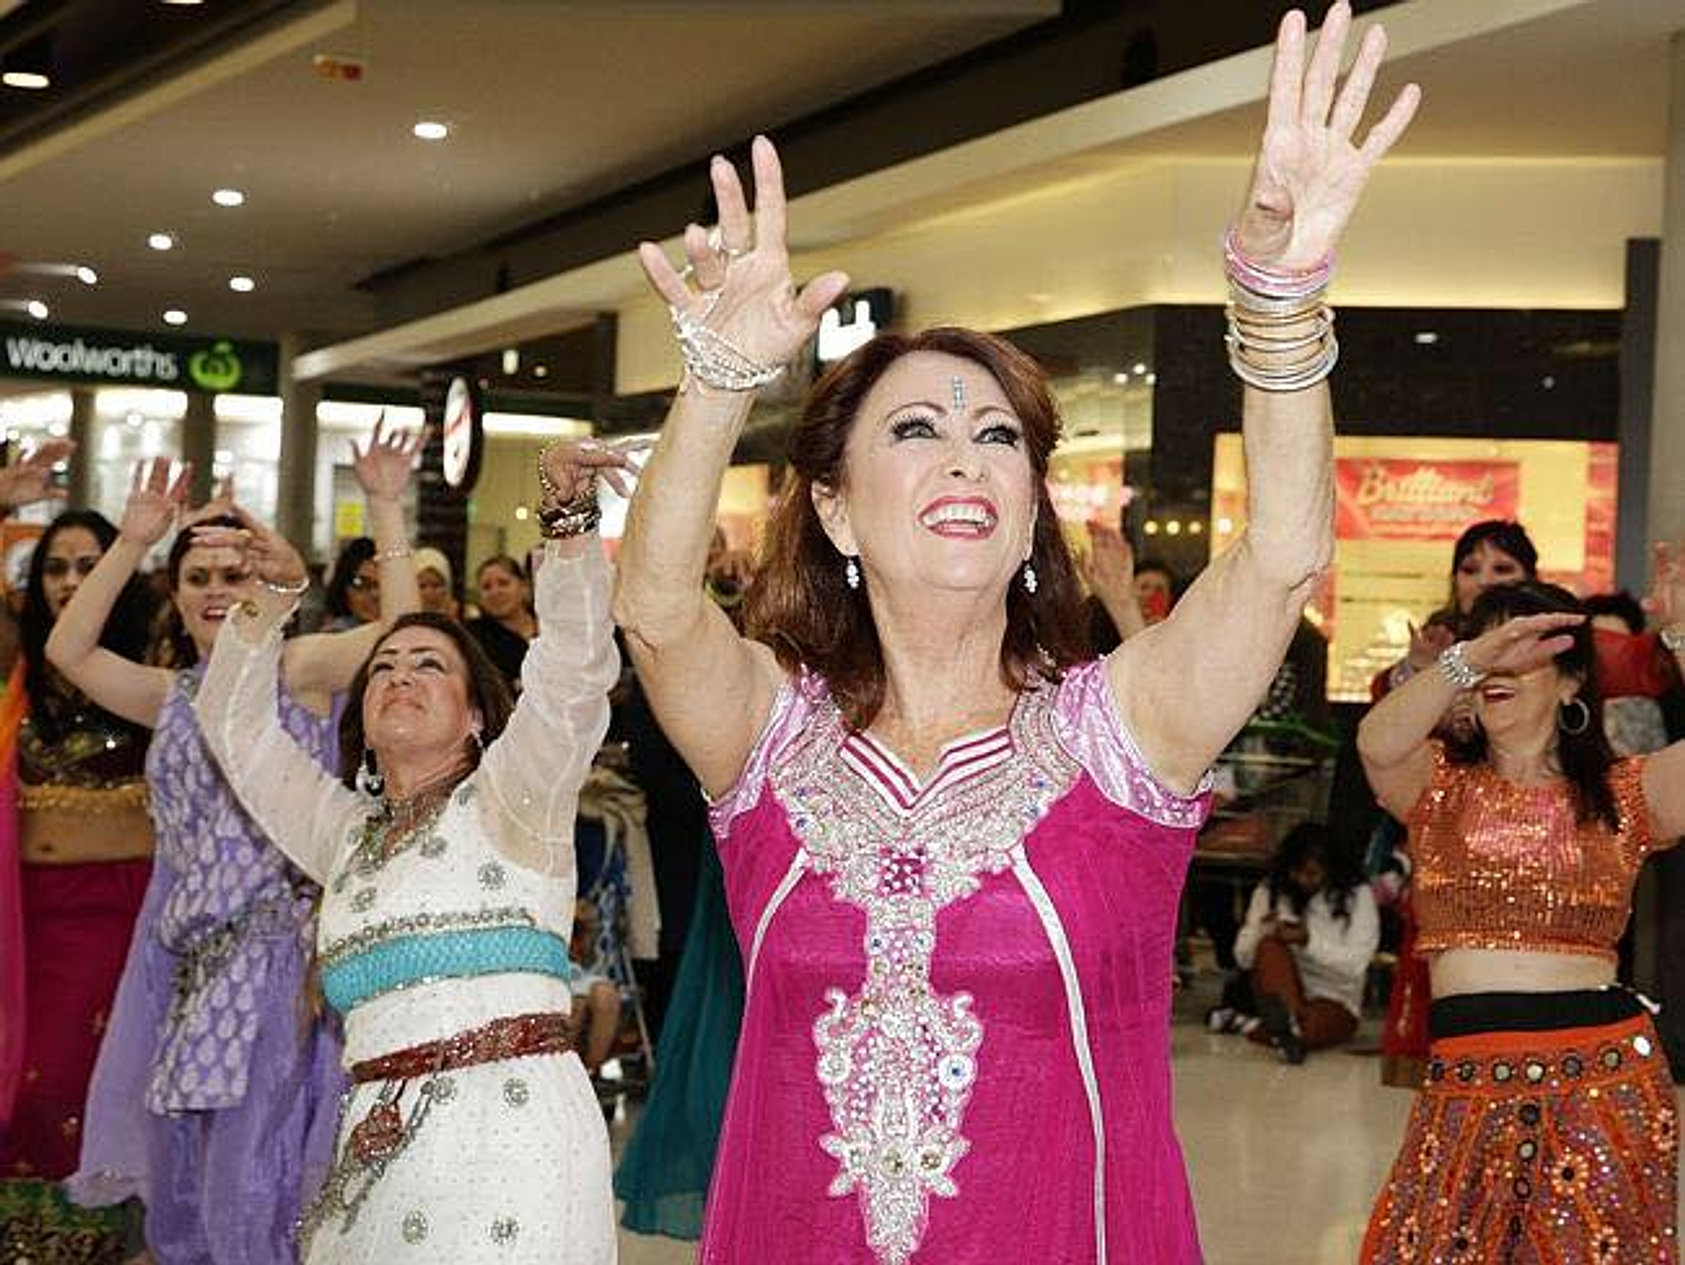 Terezka bellydance extraordinaire busting a move next to Lynne McGranger #DanceOriental